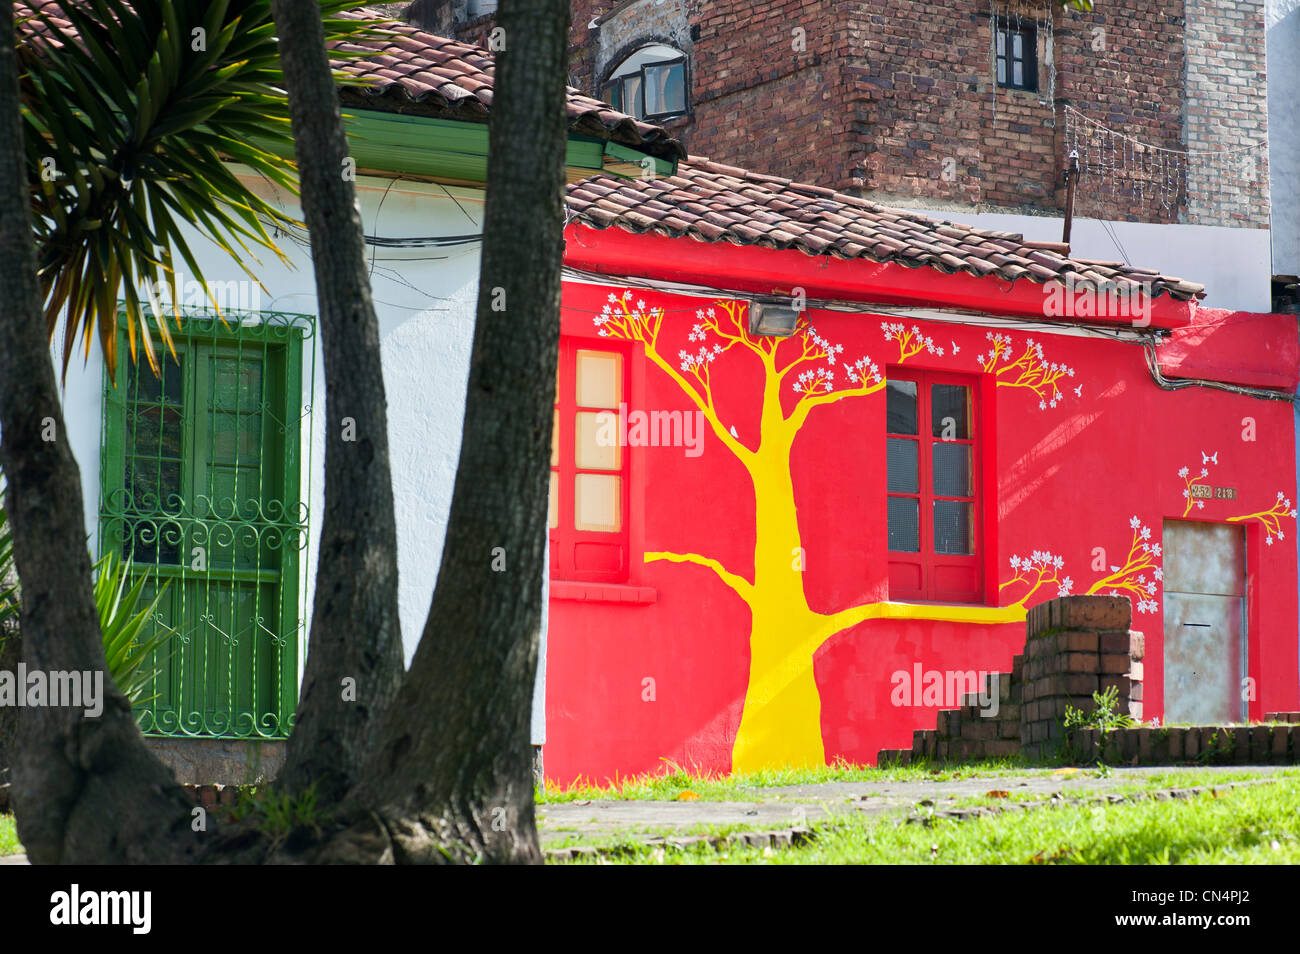 Colombia, Cundinamarca Department, Bogota, La Candelaria District - Stock Image